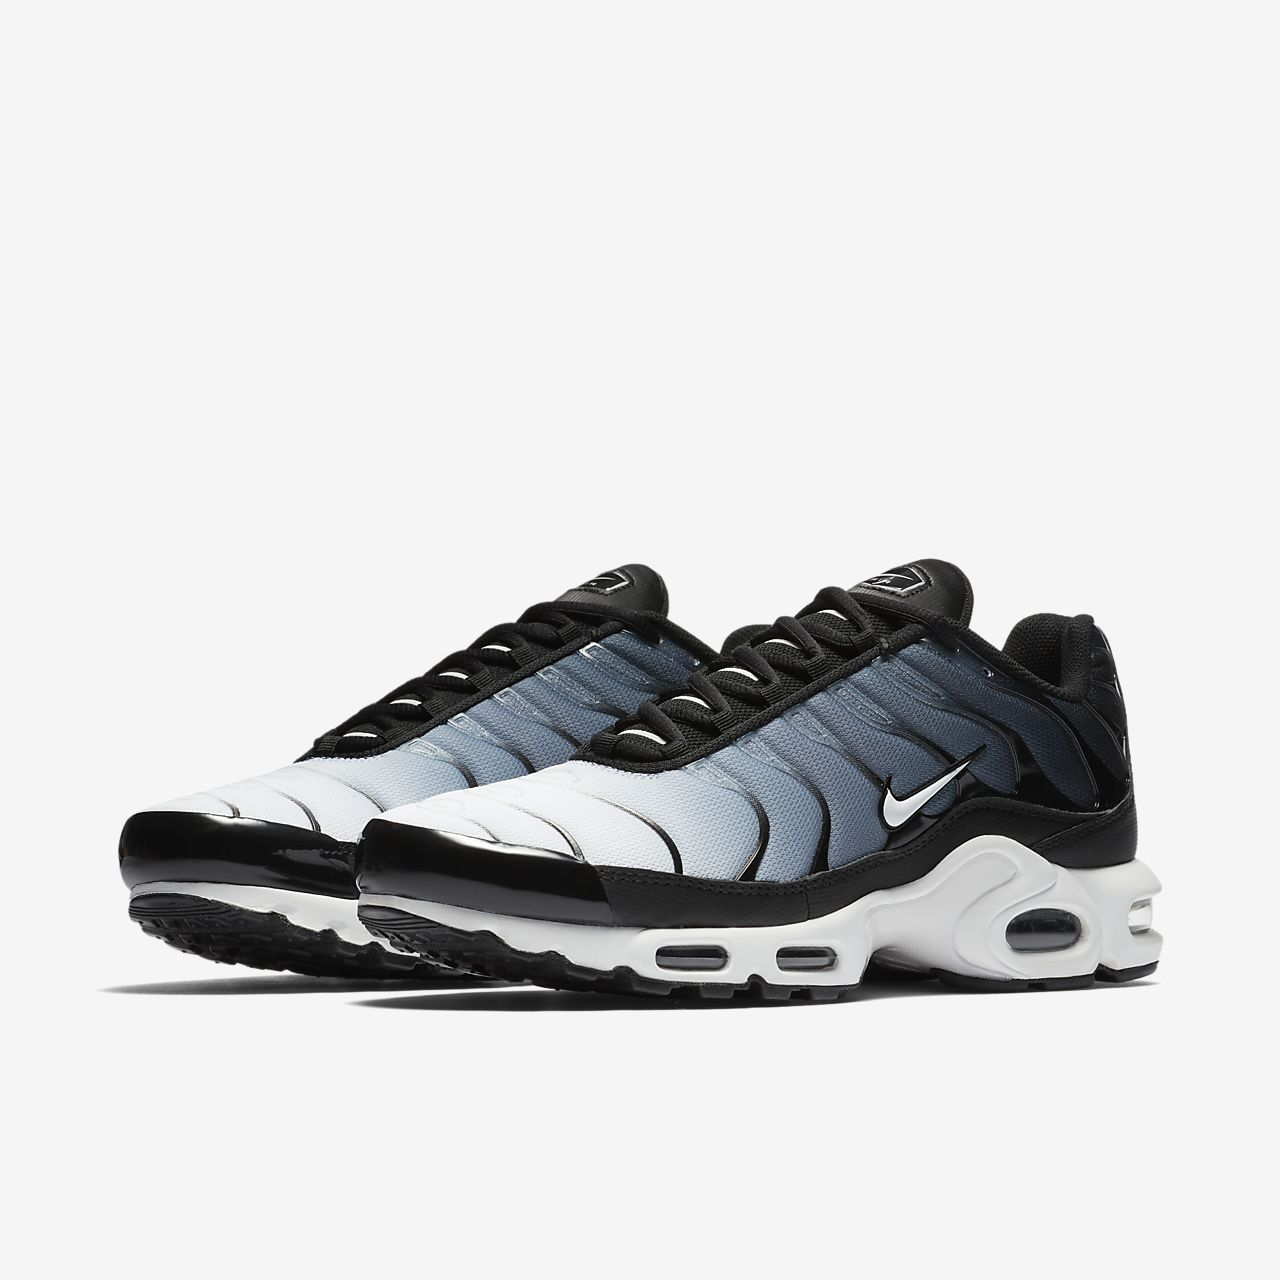 NIKE AIR MAX PLUS Obsidian/Gym Blue/Lemon MENS SNEAKERS LIFESTYLE COMFY SHOES